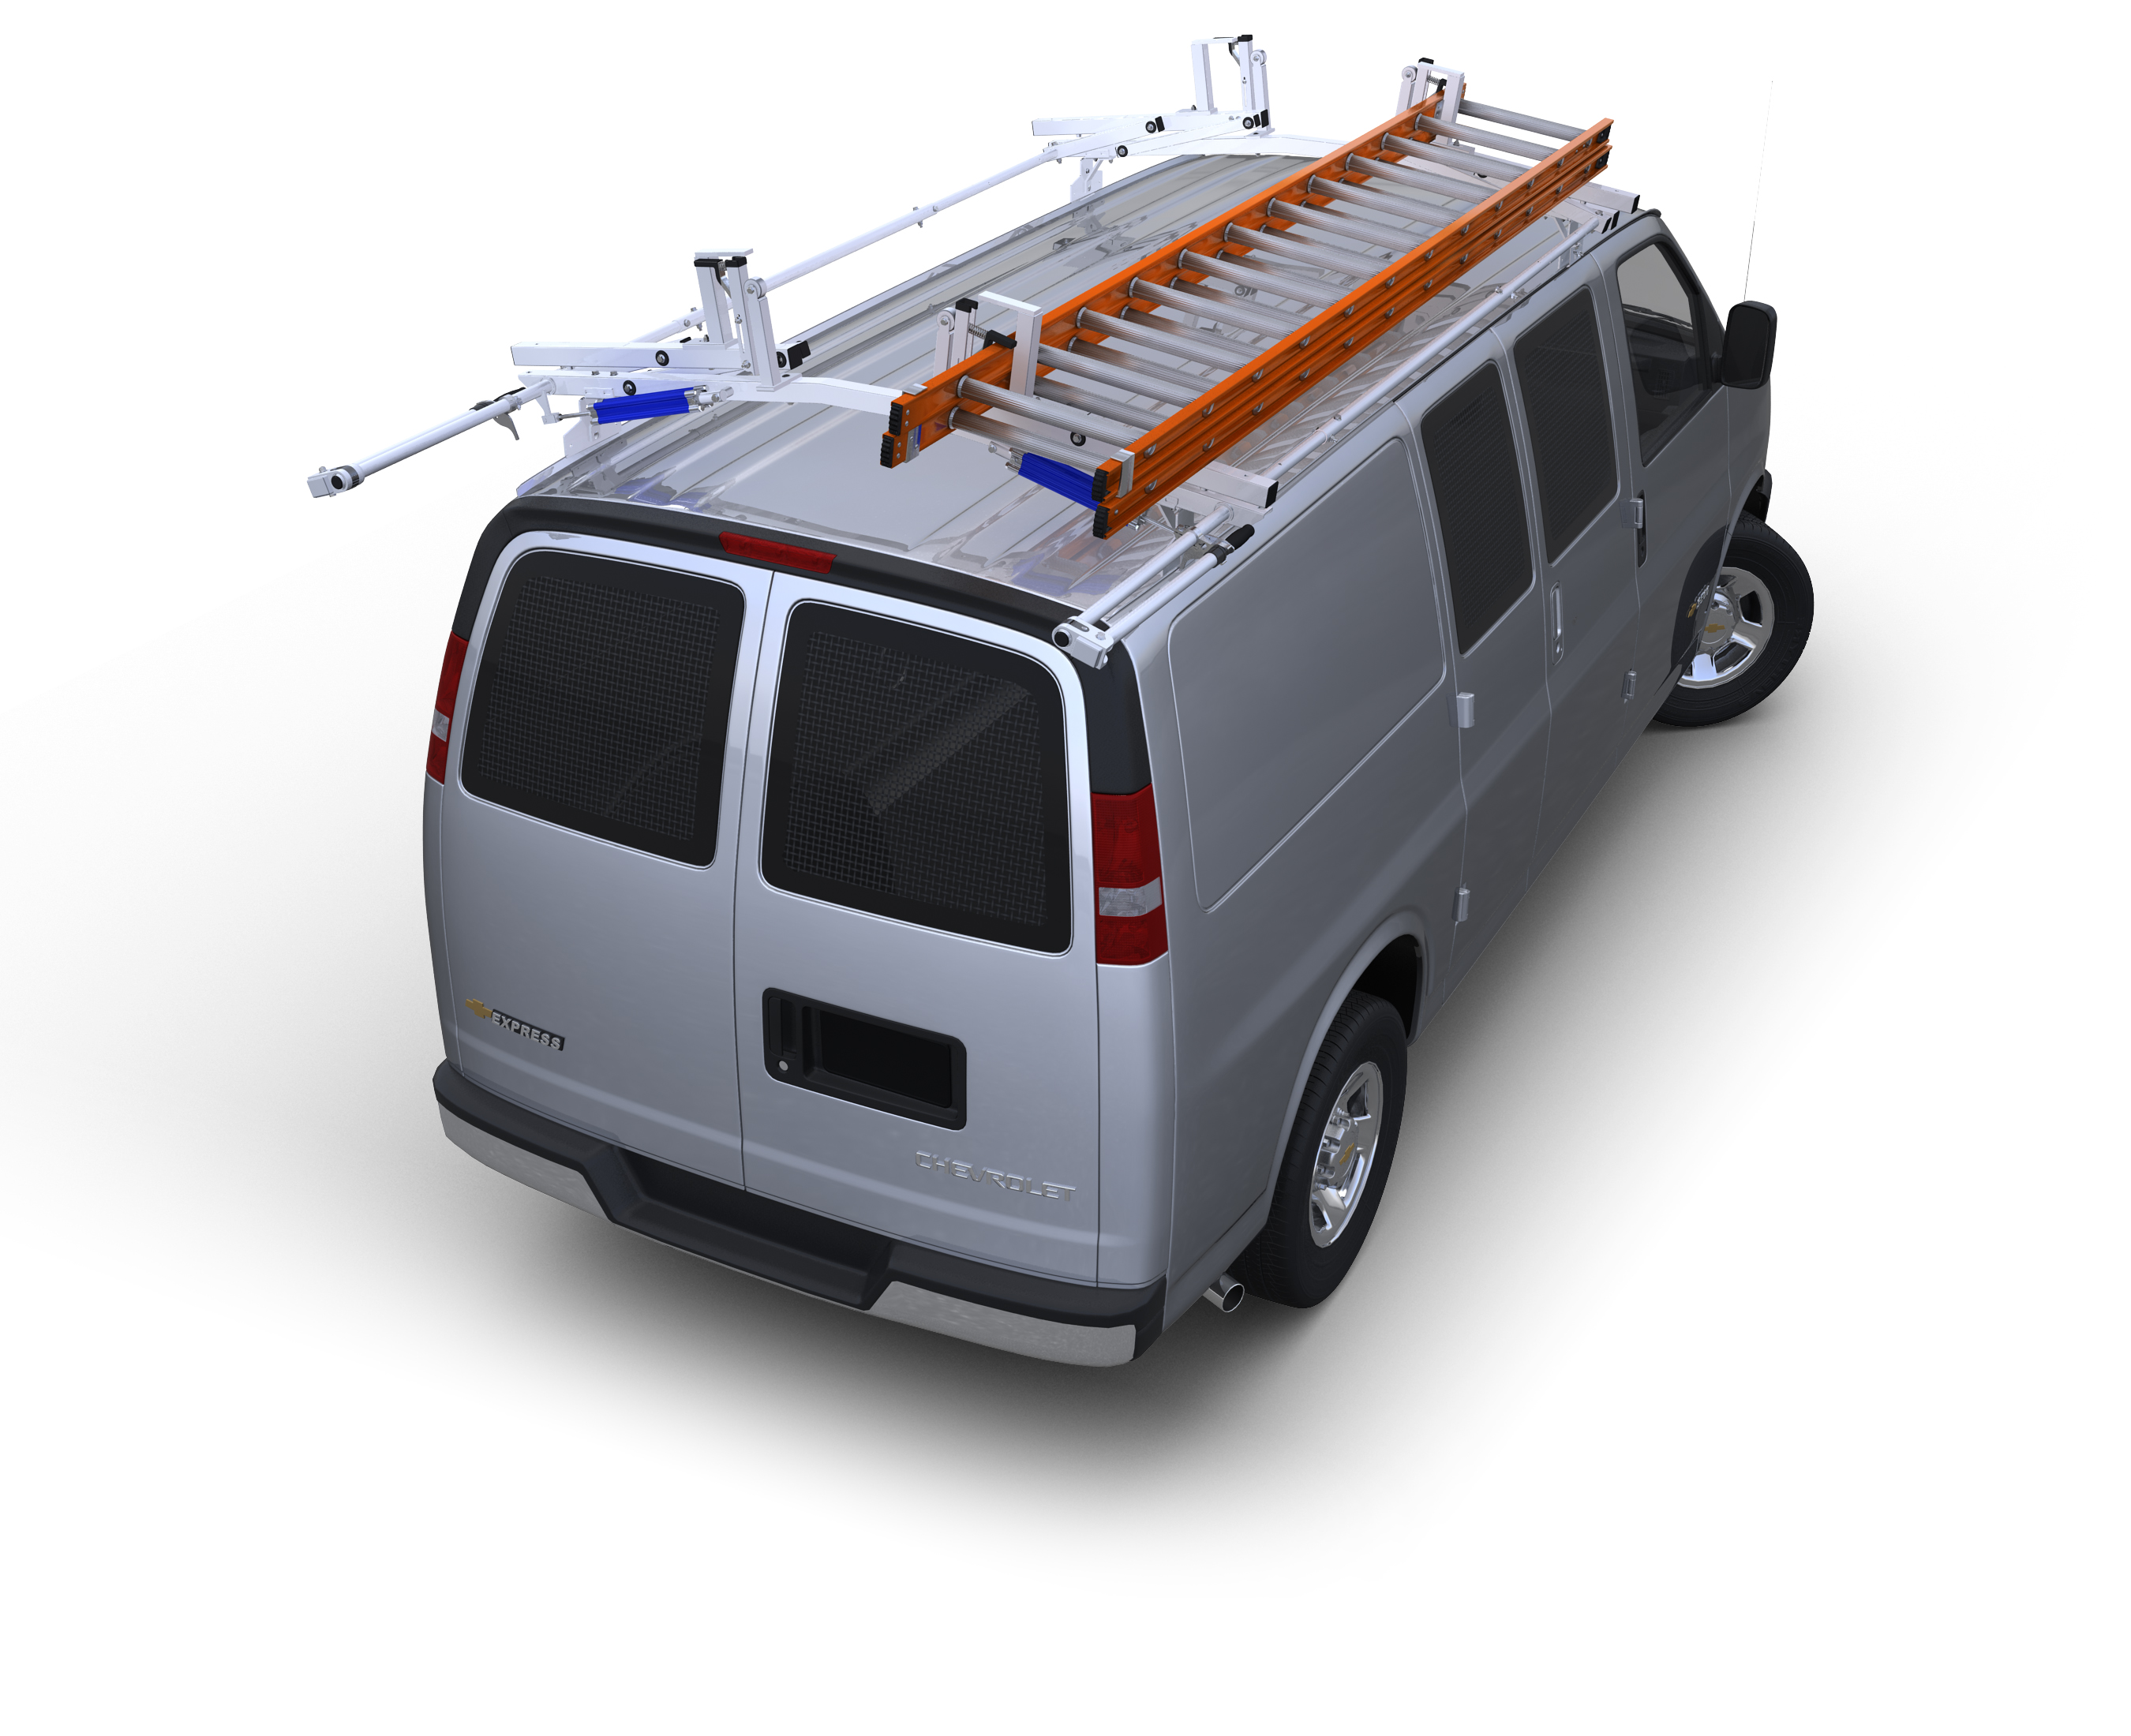 "2014 Transit Connect Contour Shelving with Open Back, 28"" Wide"